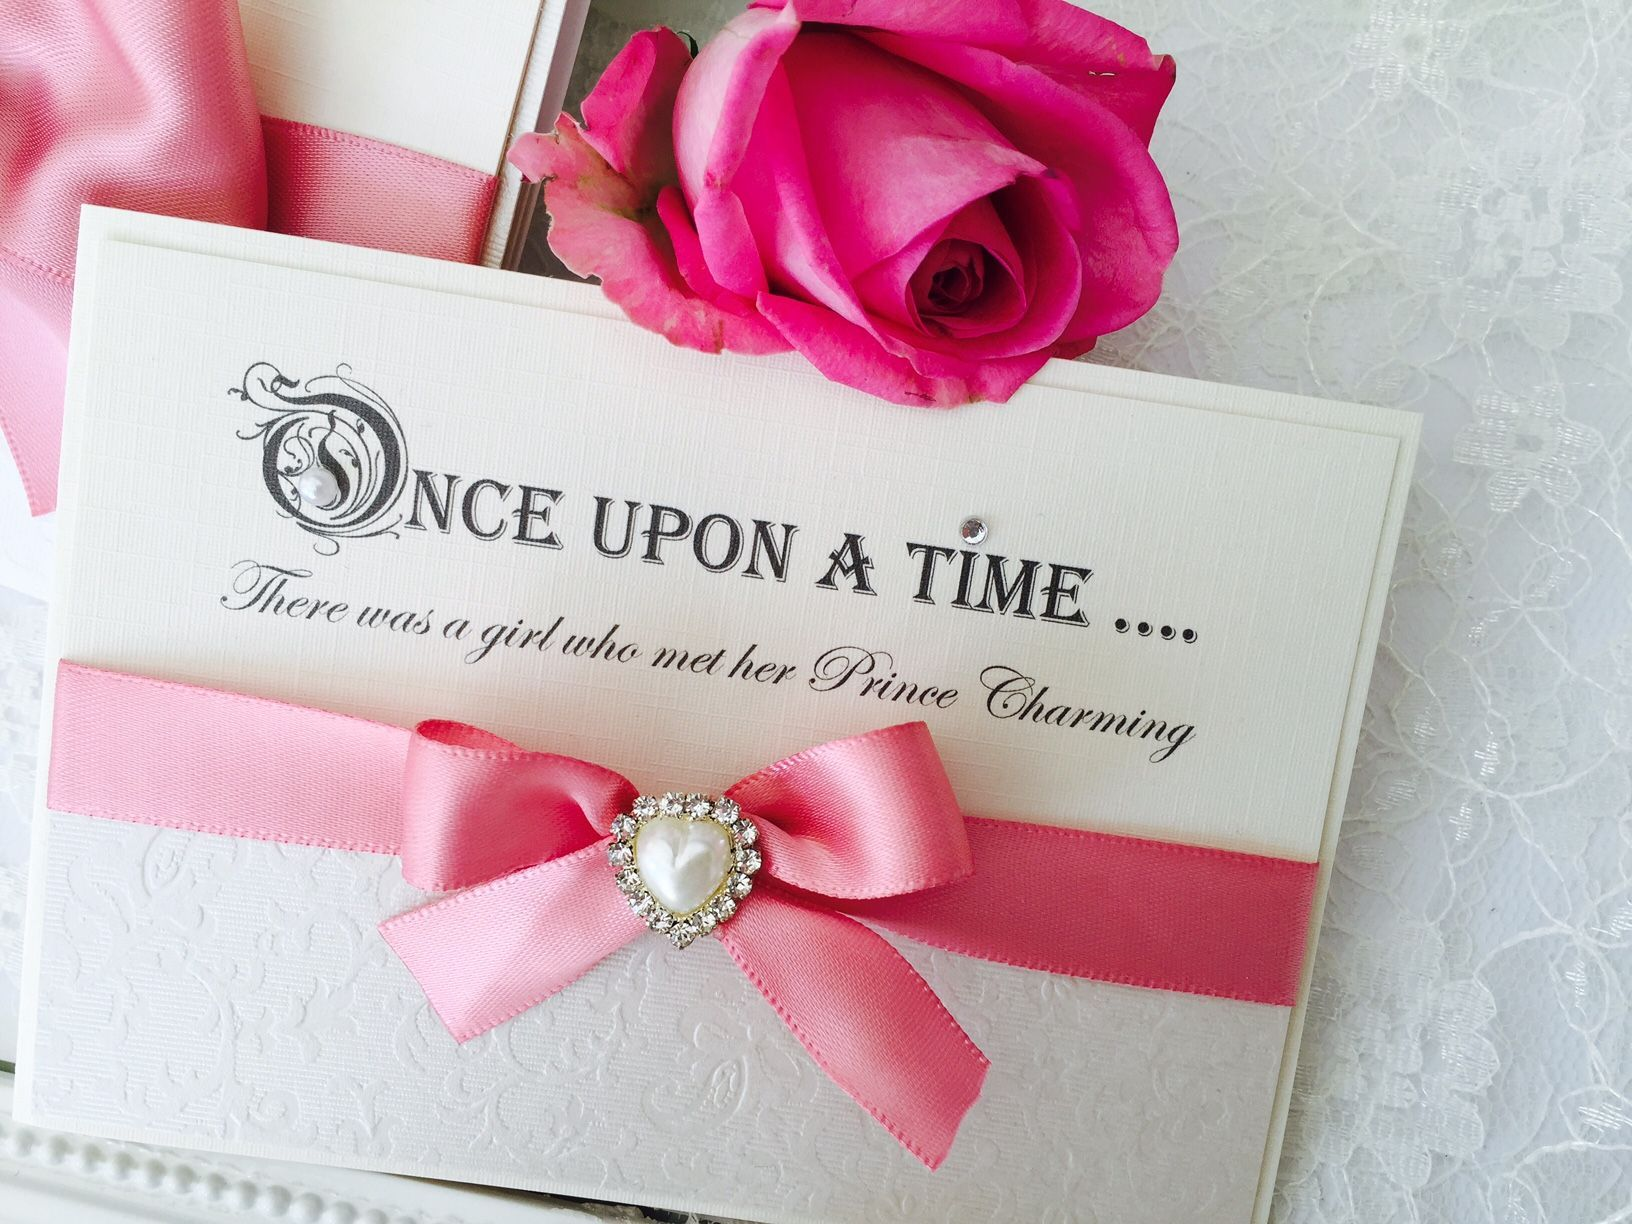 Fairytale quotes pretty save the date cards with pink ribbon bow and ...